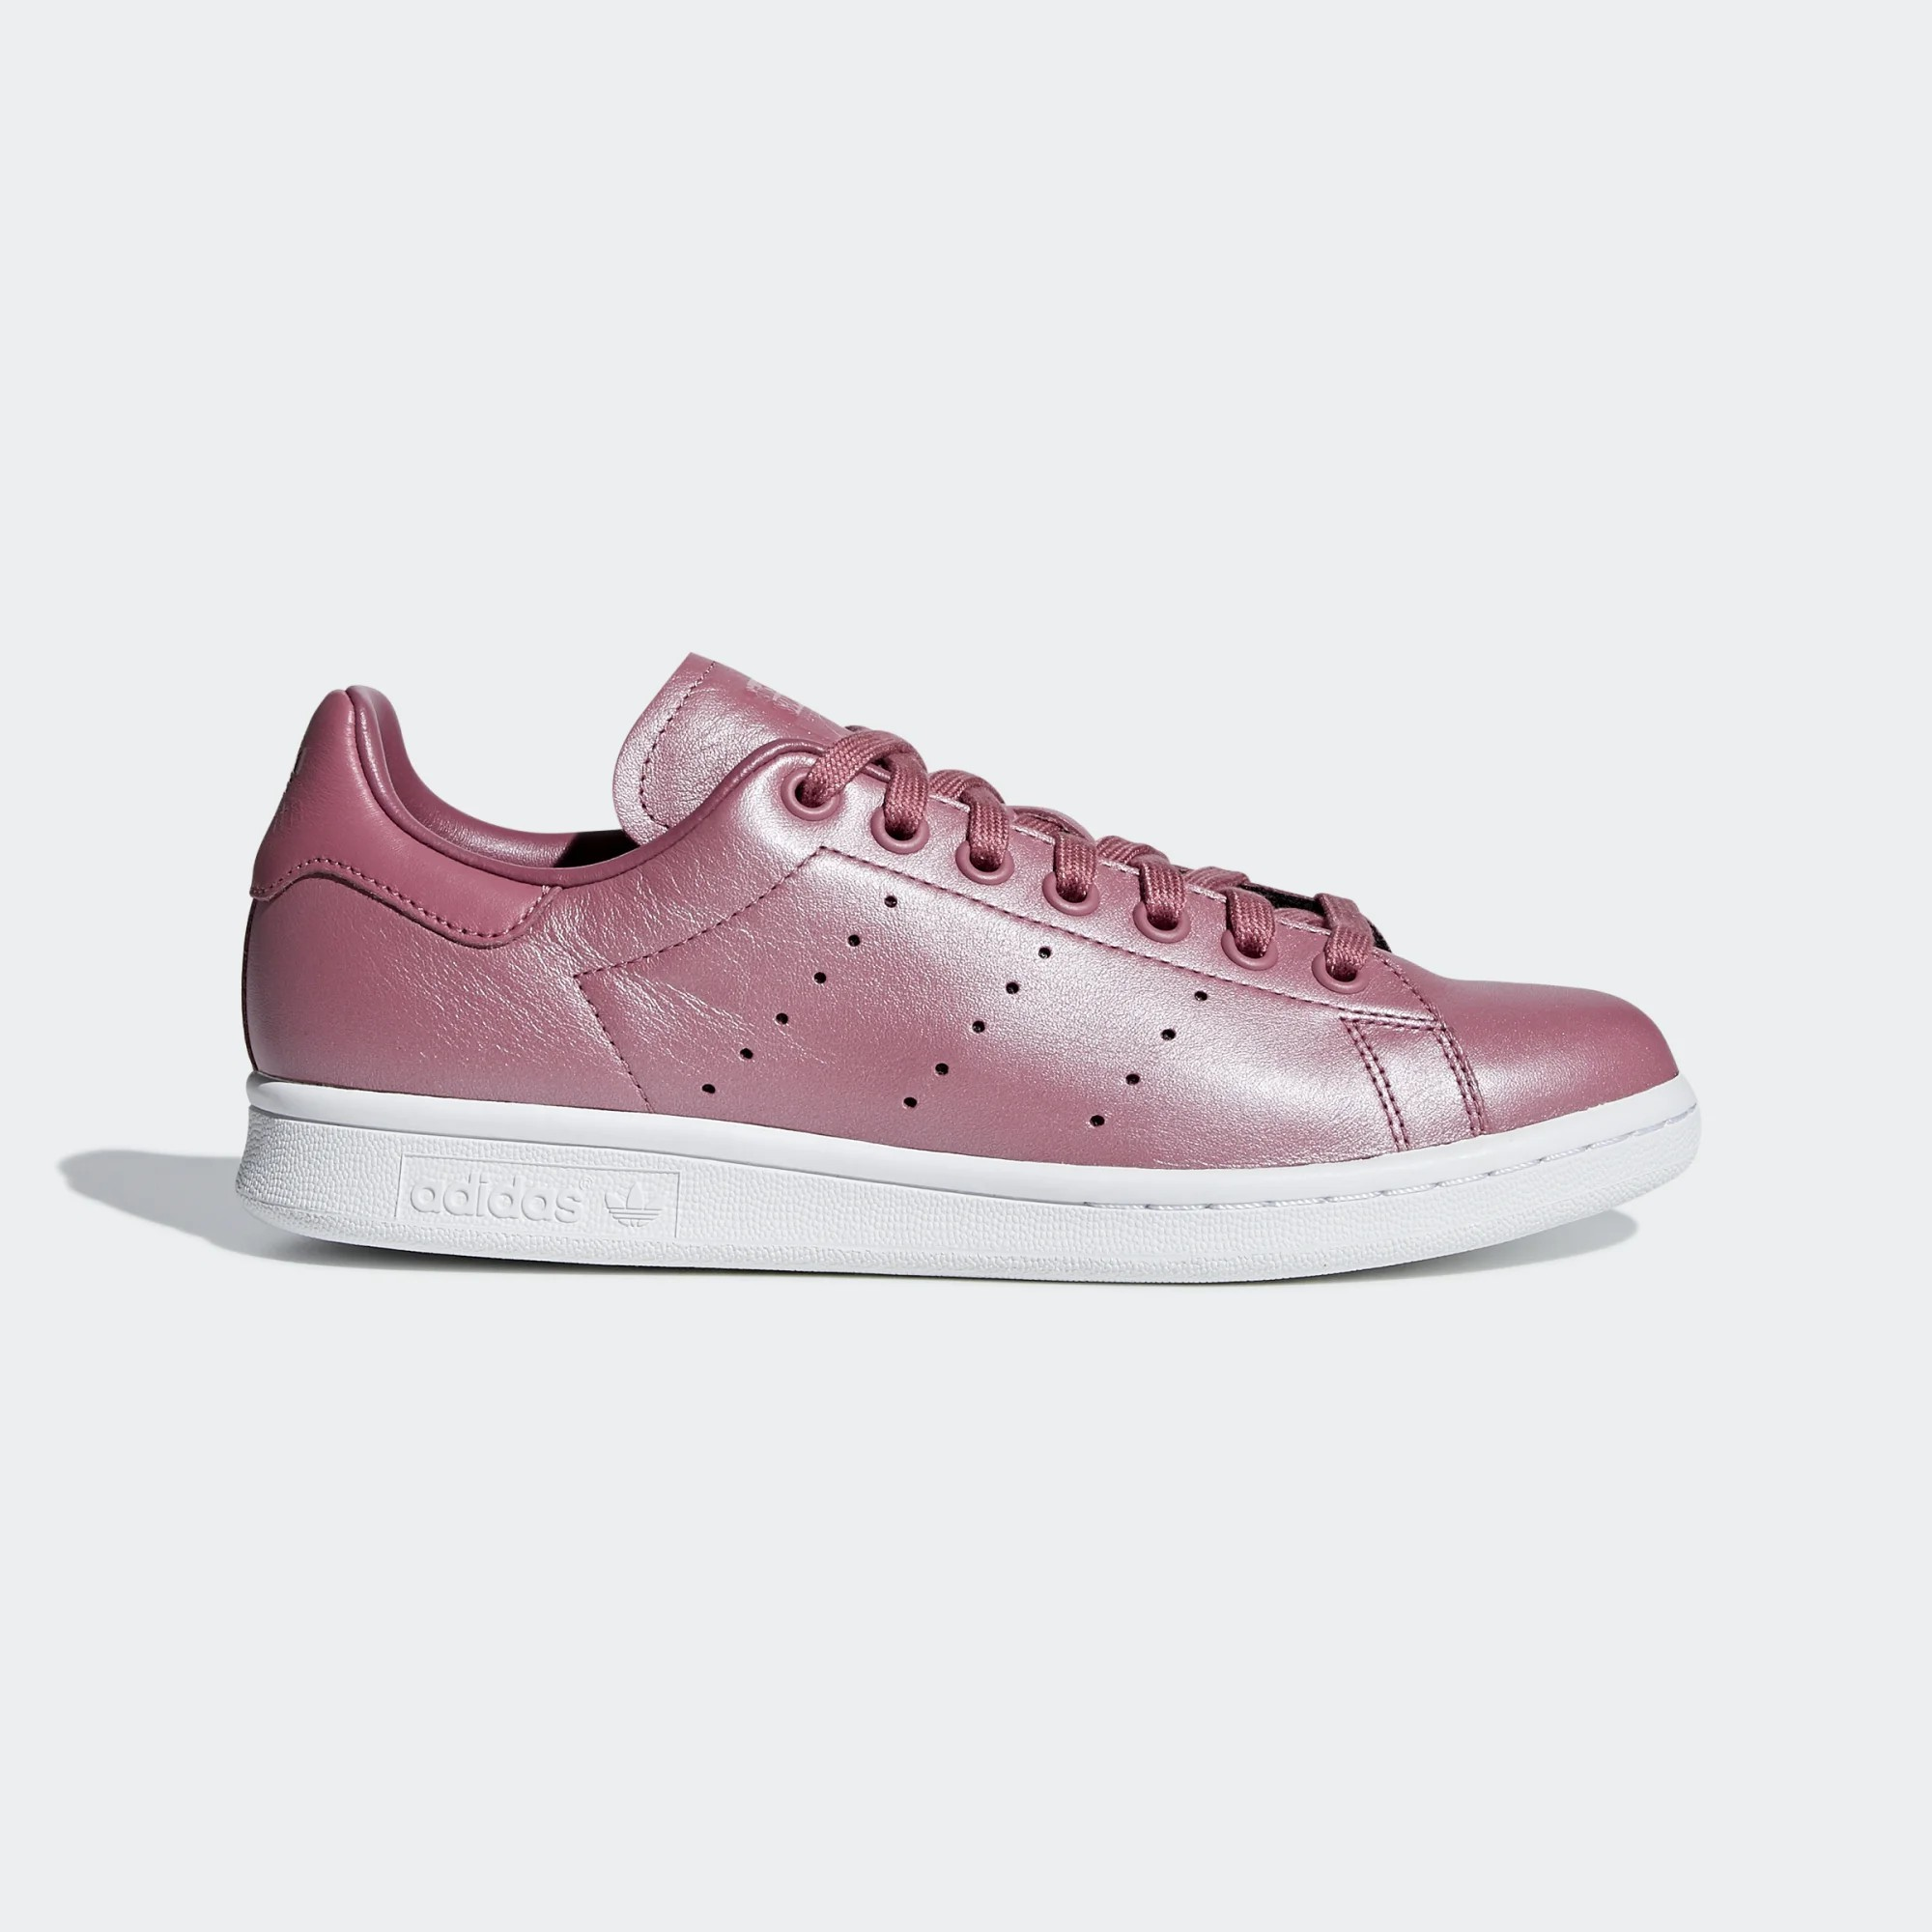 adidas Originals Stan Smith W Pink Sneakers CM8603